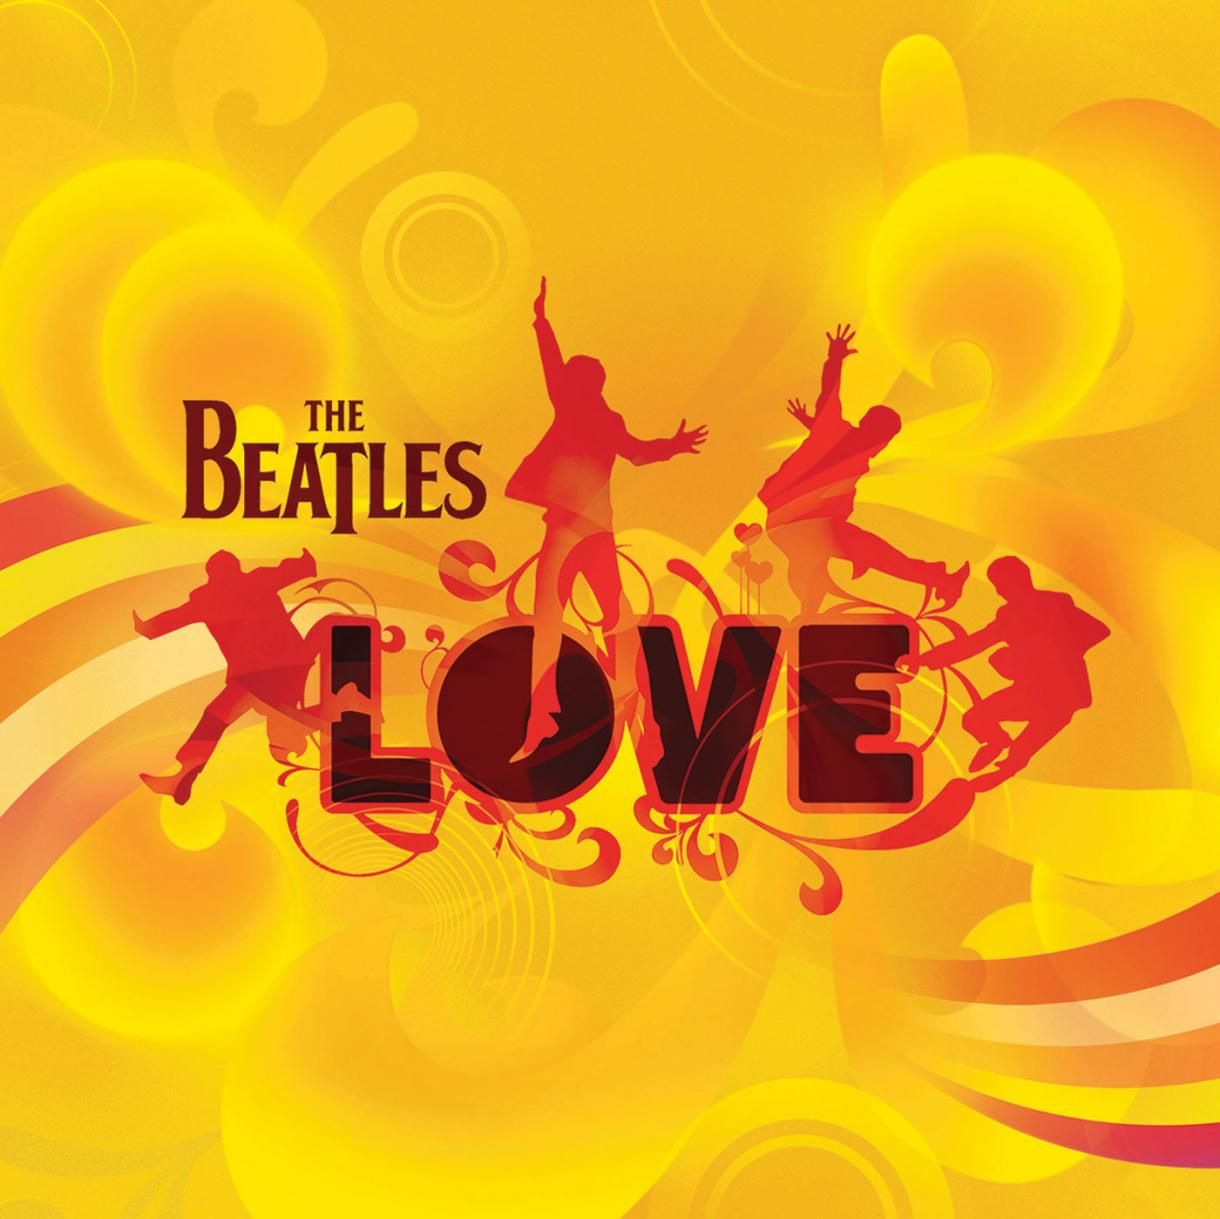 The Beatles - Love album cover